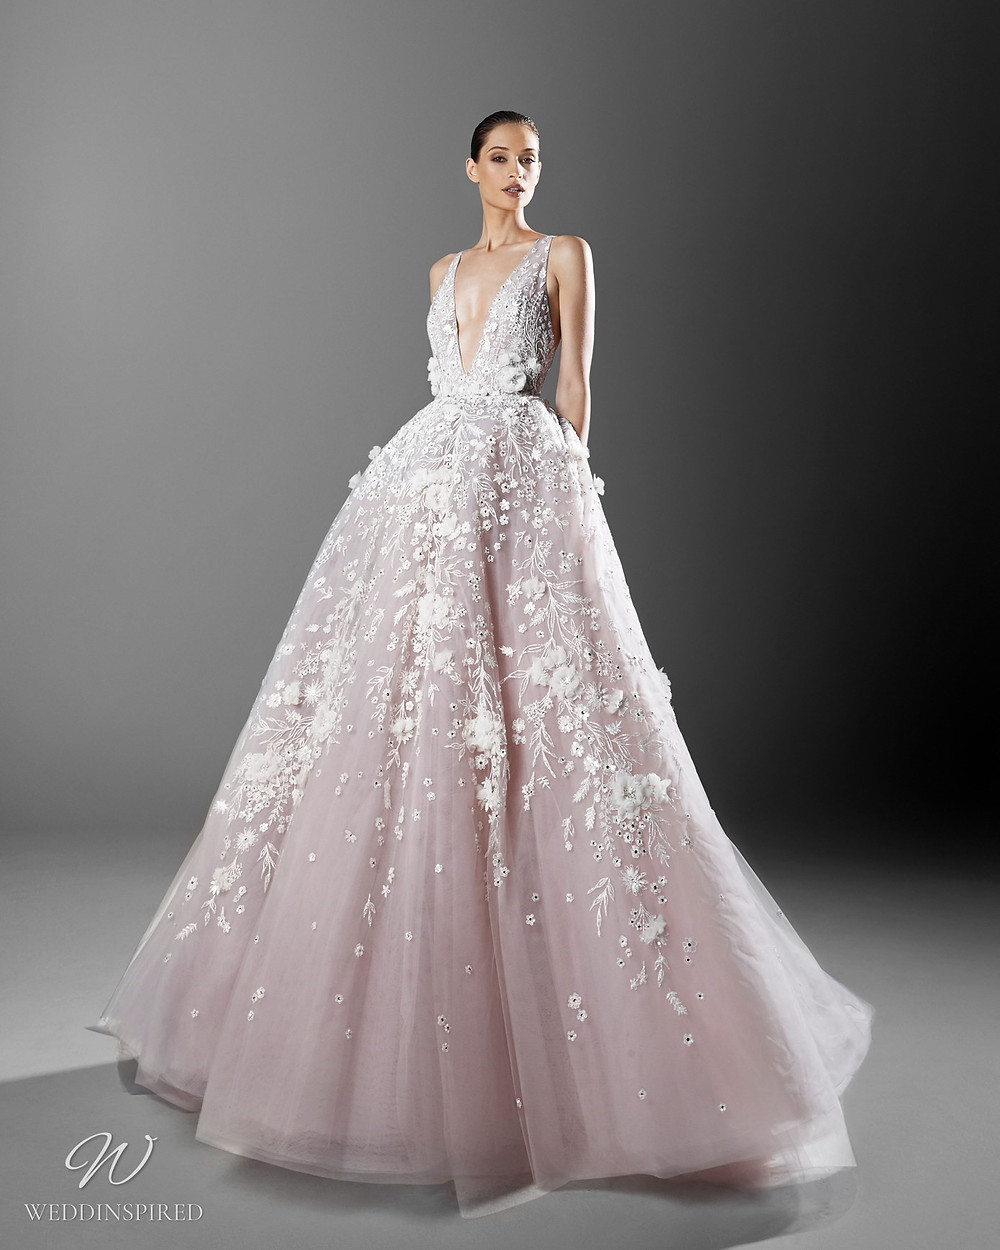 A Zuhair Murad romantic blush princess ball gown wedding dress with a tulle skirt and flowers